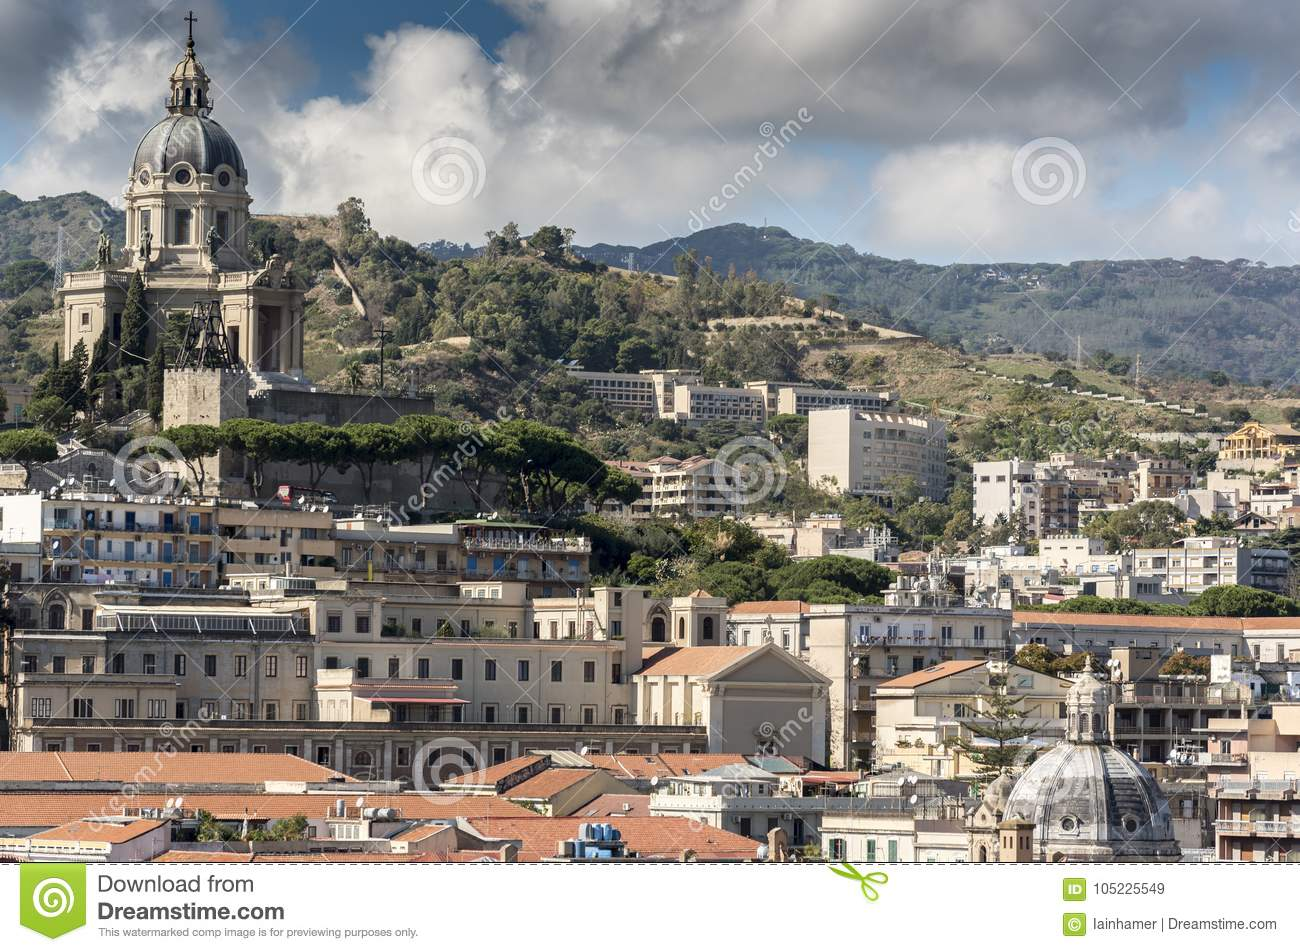 Sacrario Militare Cristo Re Messina Italy Stock Image - Image of messina,  harbor: 105225549